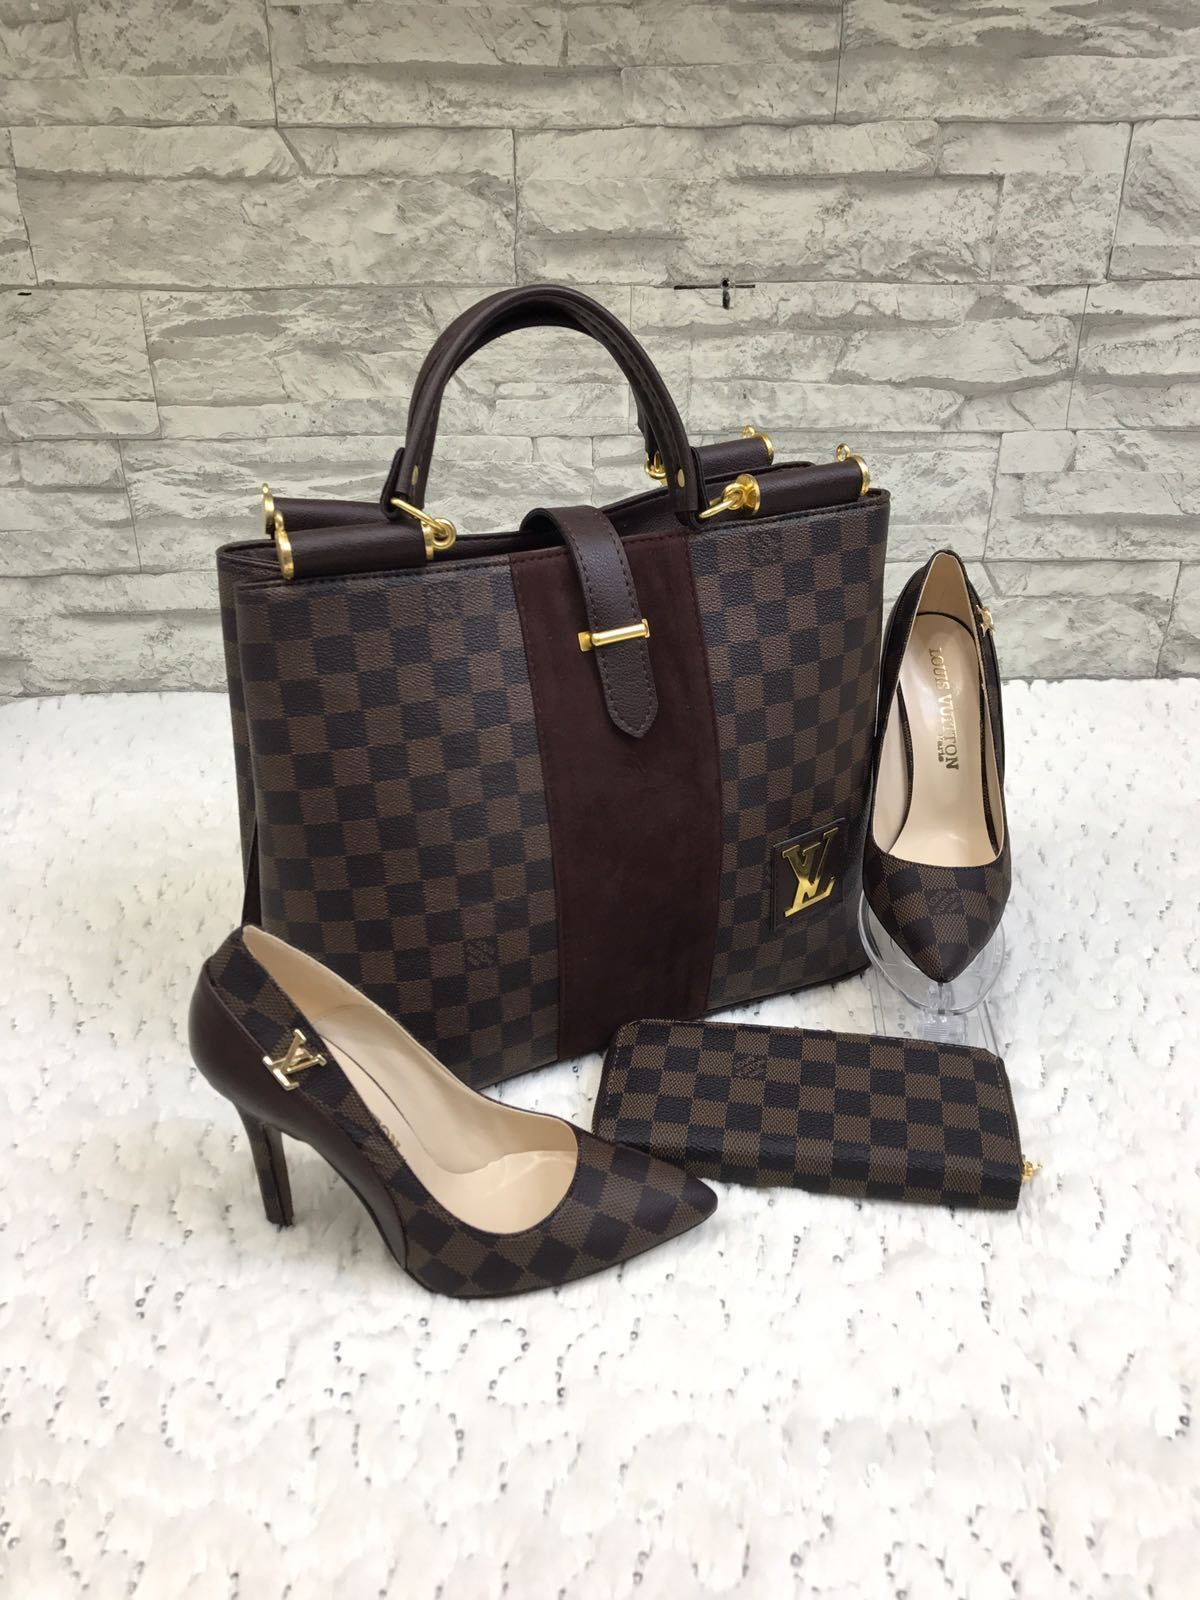 Free shipping 3 pieces Louis Vuitton damier handbag shoes and wallet  high-quality replica Faux Leather comes in a transparent nylon bag and  white box for ... e2f856c73fdd0